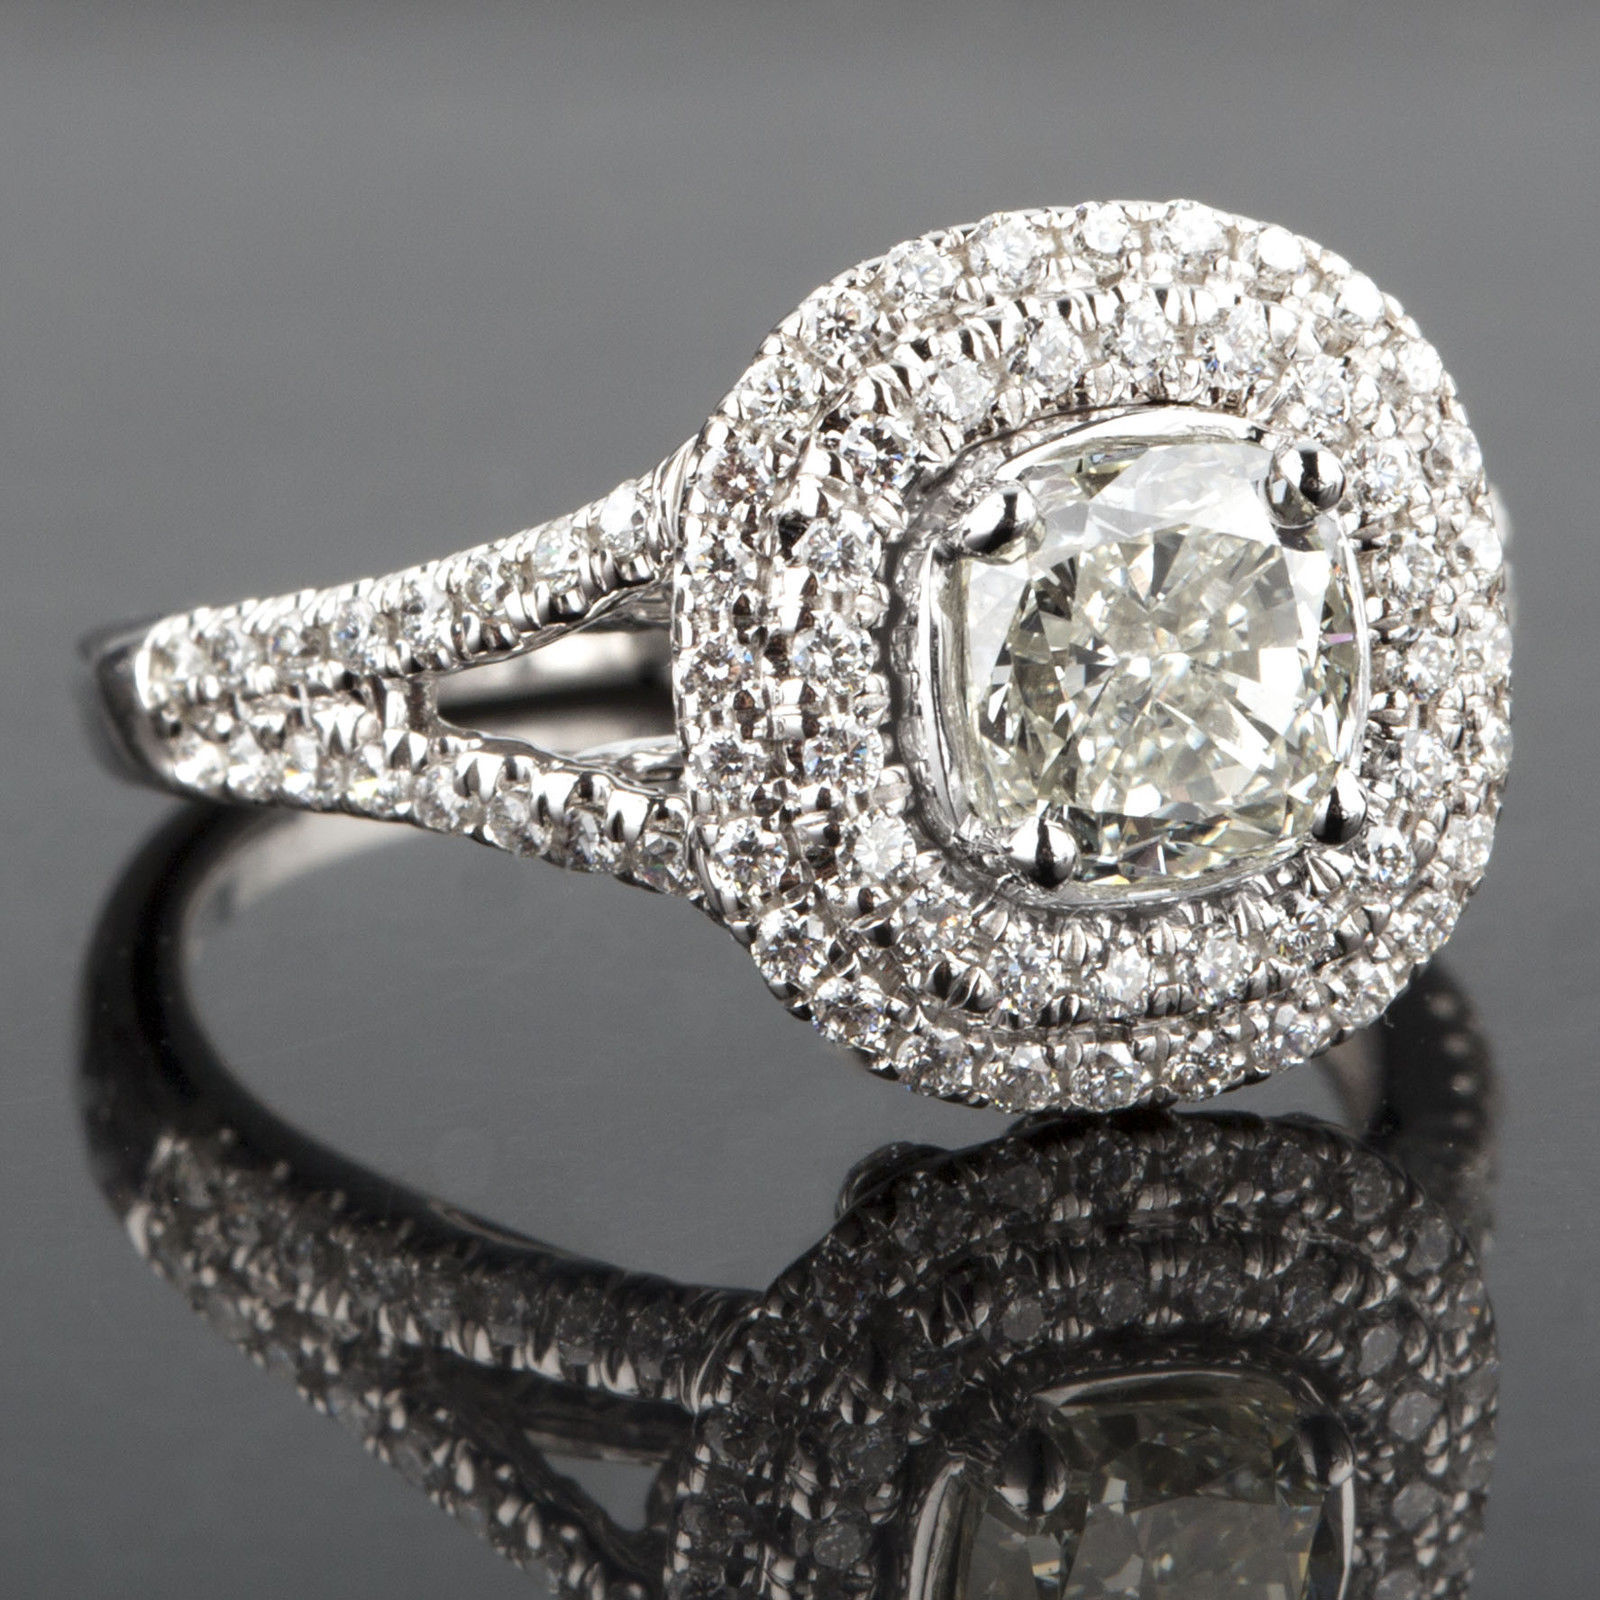 Primary image for 1.87 TCW Cushion Cut Diamond Engagement Ring Micro Pave18K White Gold